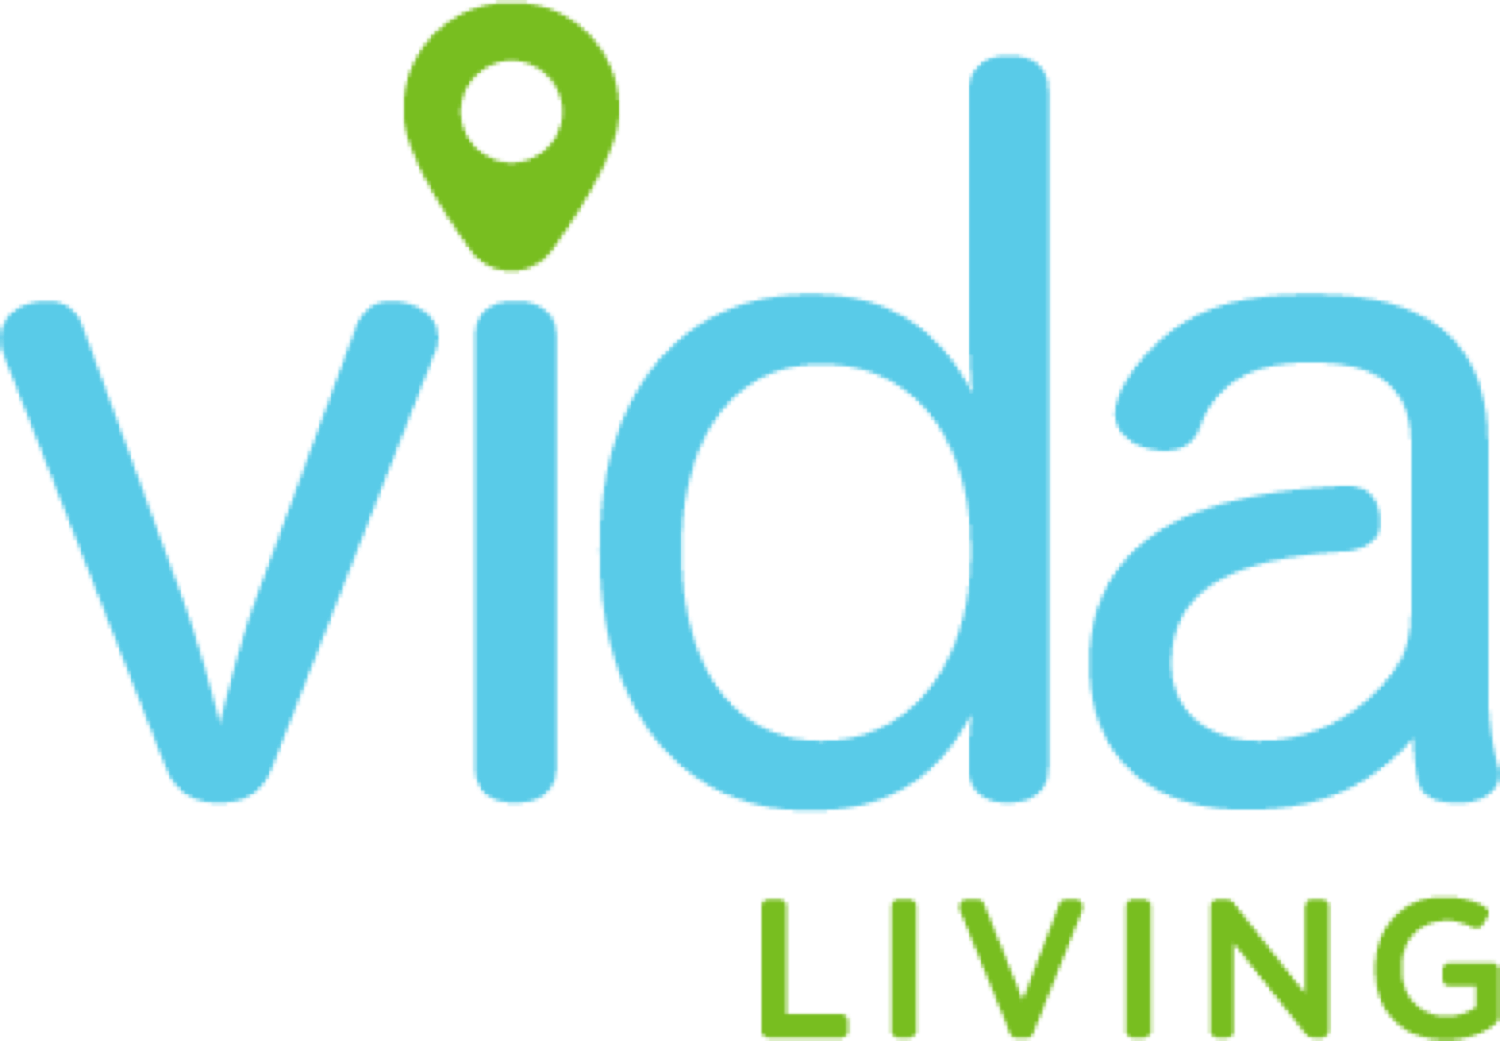 Logo of Vida Living